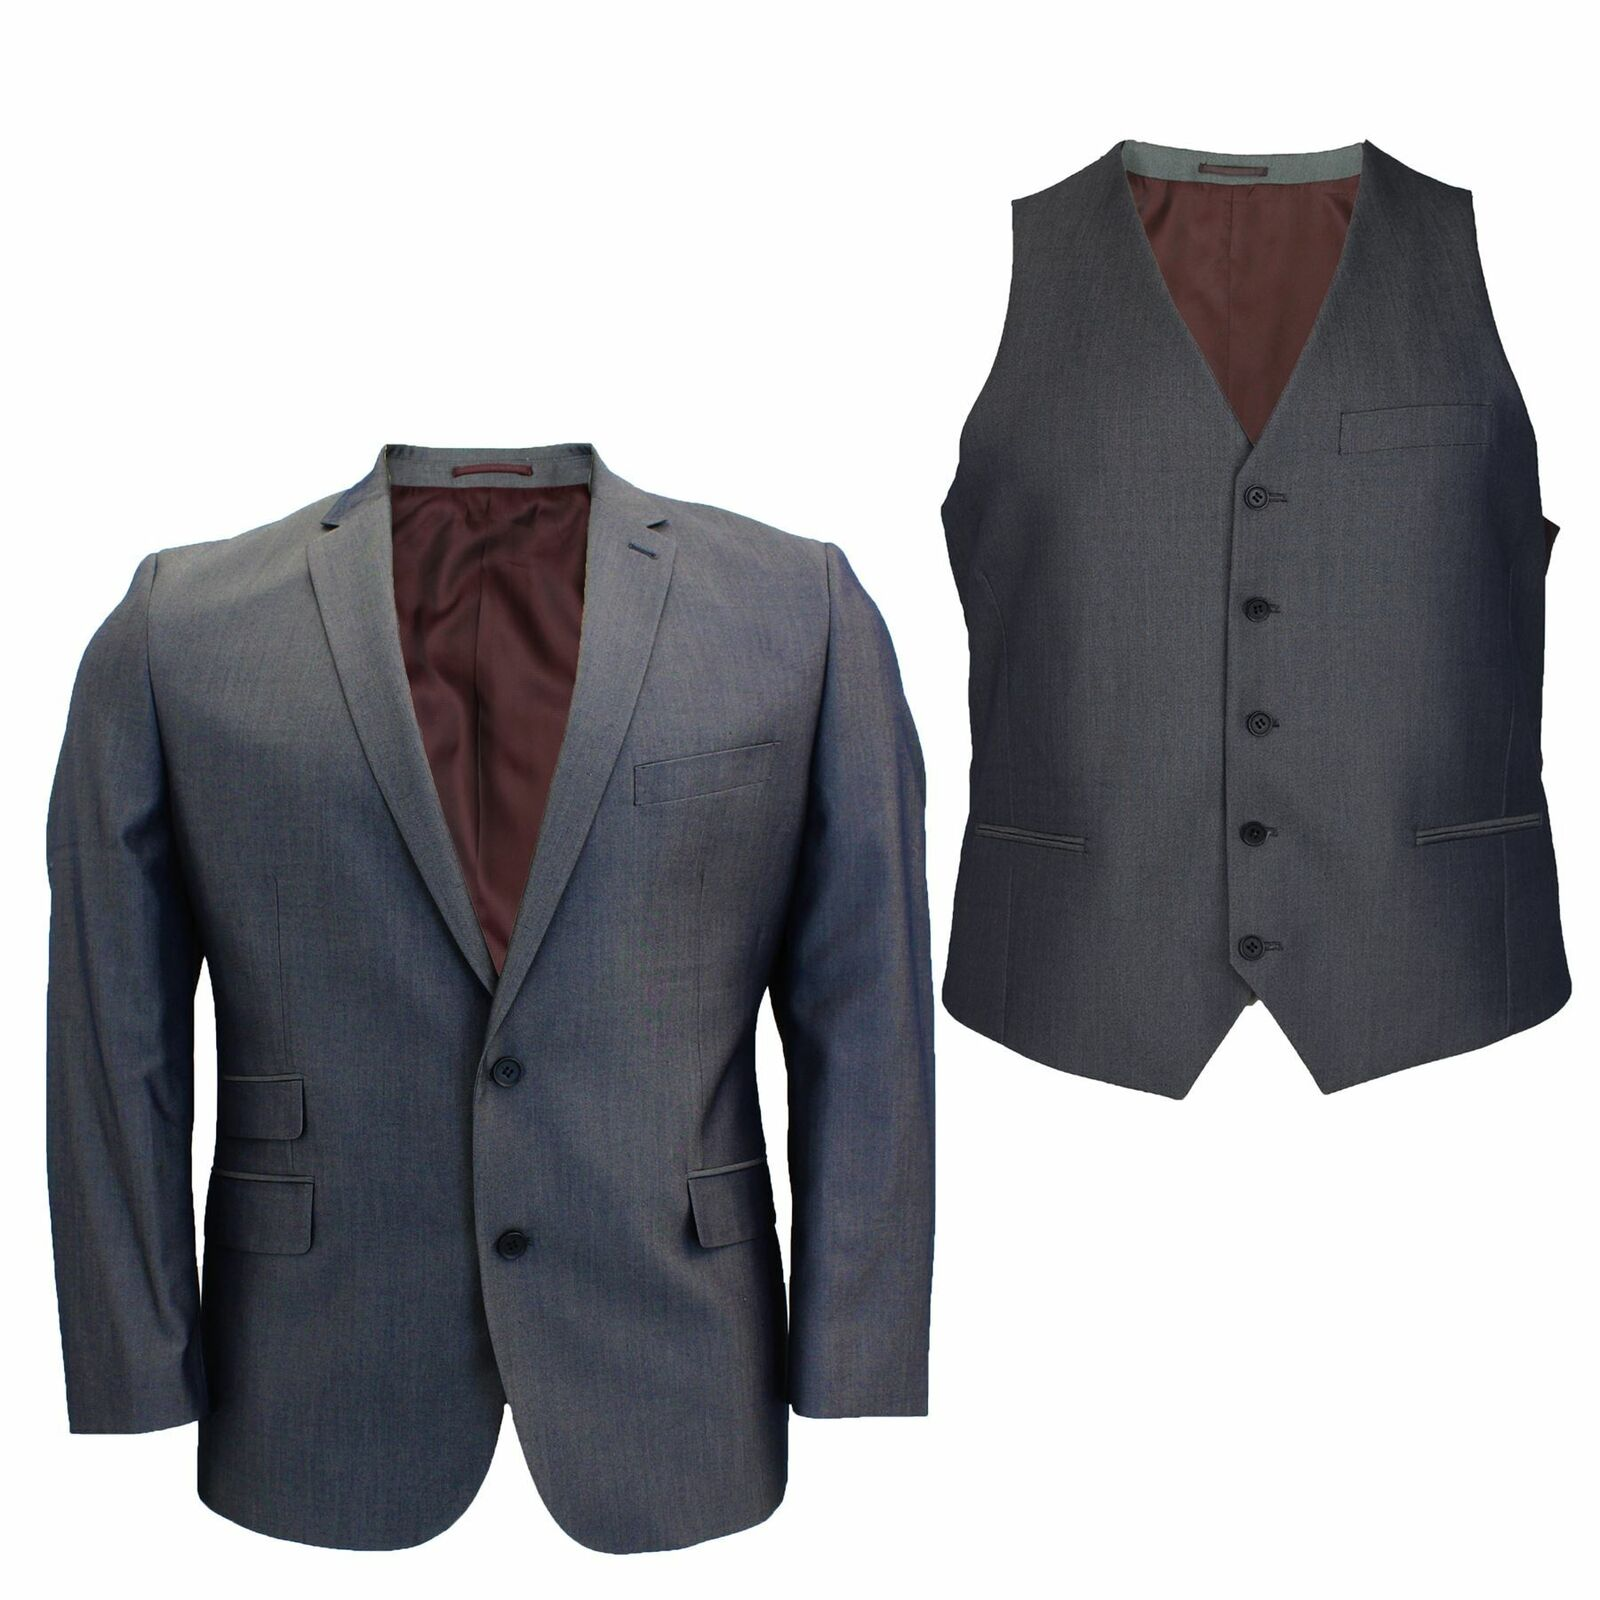 8354de36 Mens Big Size Charcoal Blazer Waistcoat 2 Piece Suit Sold Separately 50 52  54 56